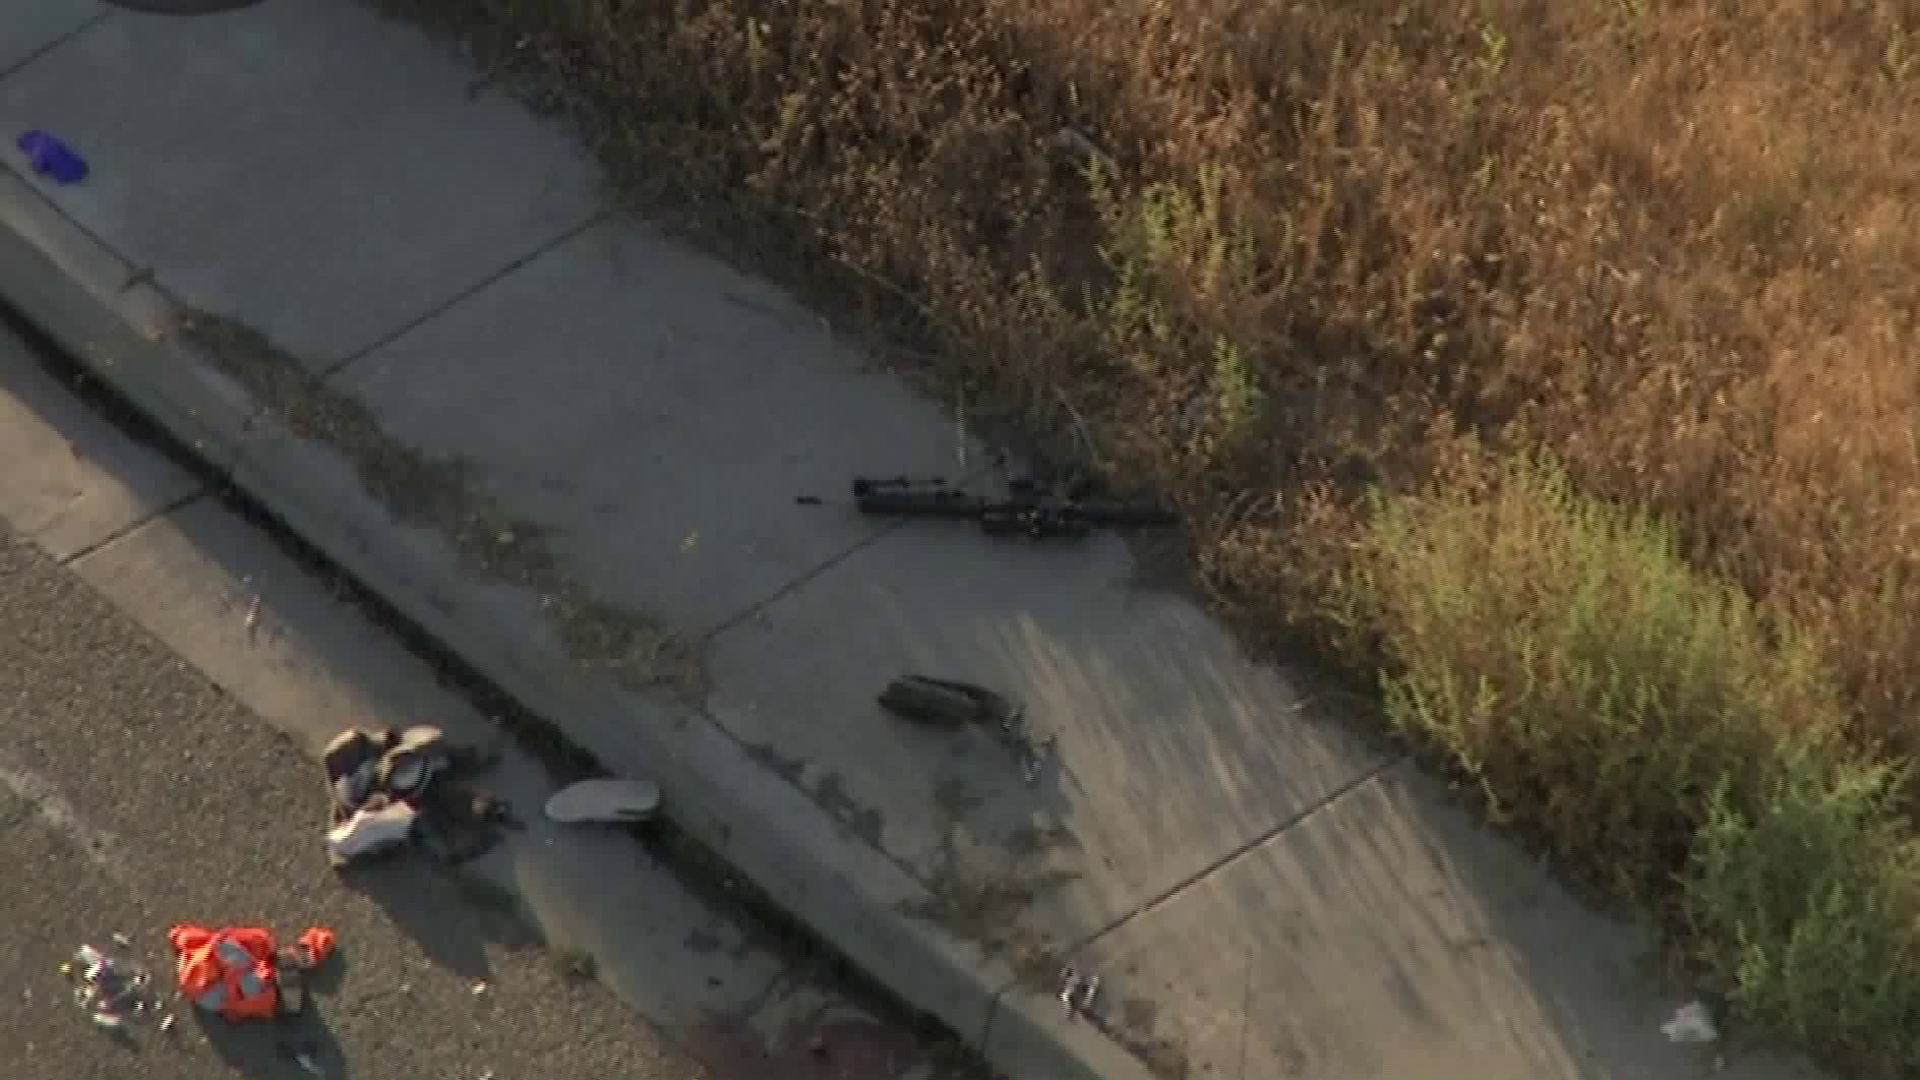 A firearm is seen on the ground at the scene of a shooting that left one CHP officer dead and two other wounded in Riverside on Aug. 12, 2019. (Credit: KTLA)